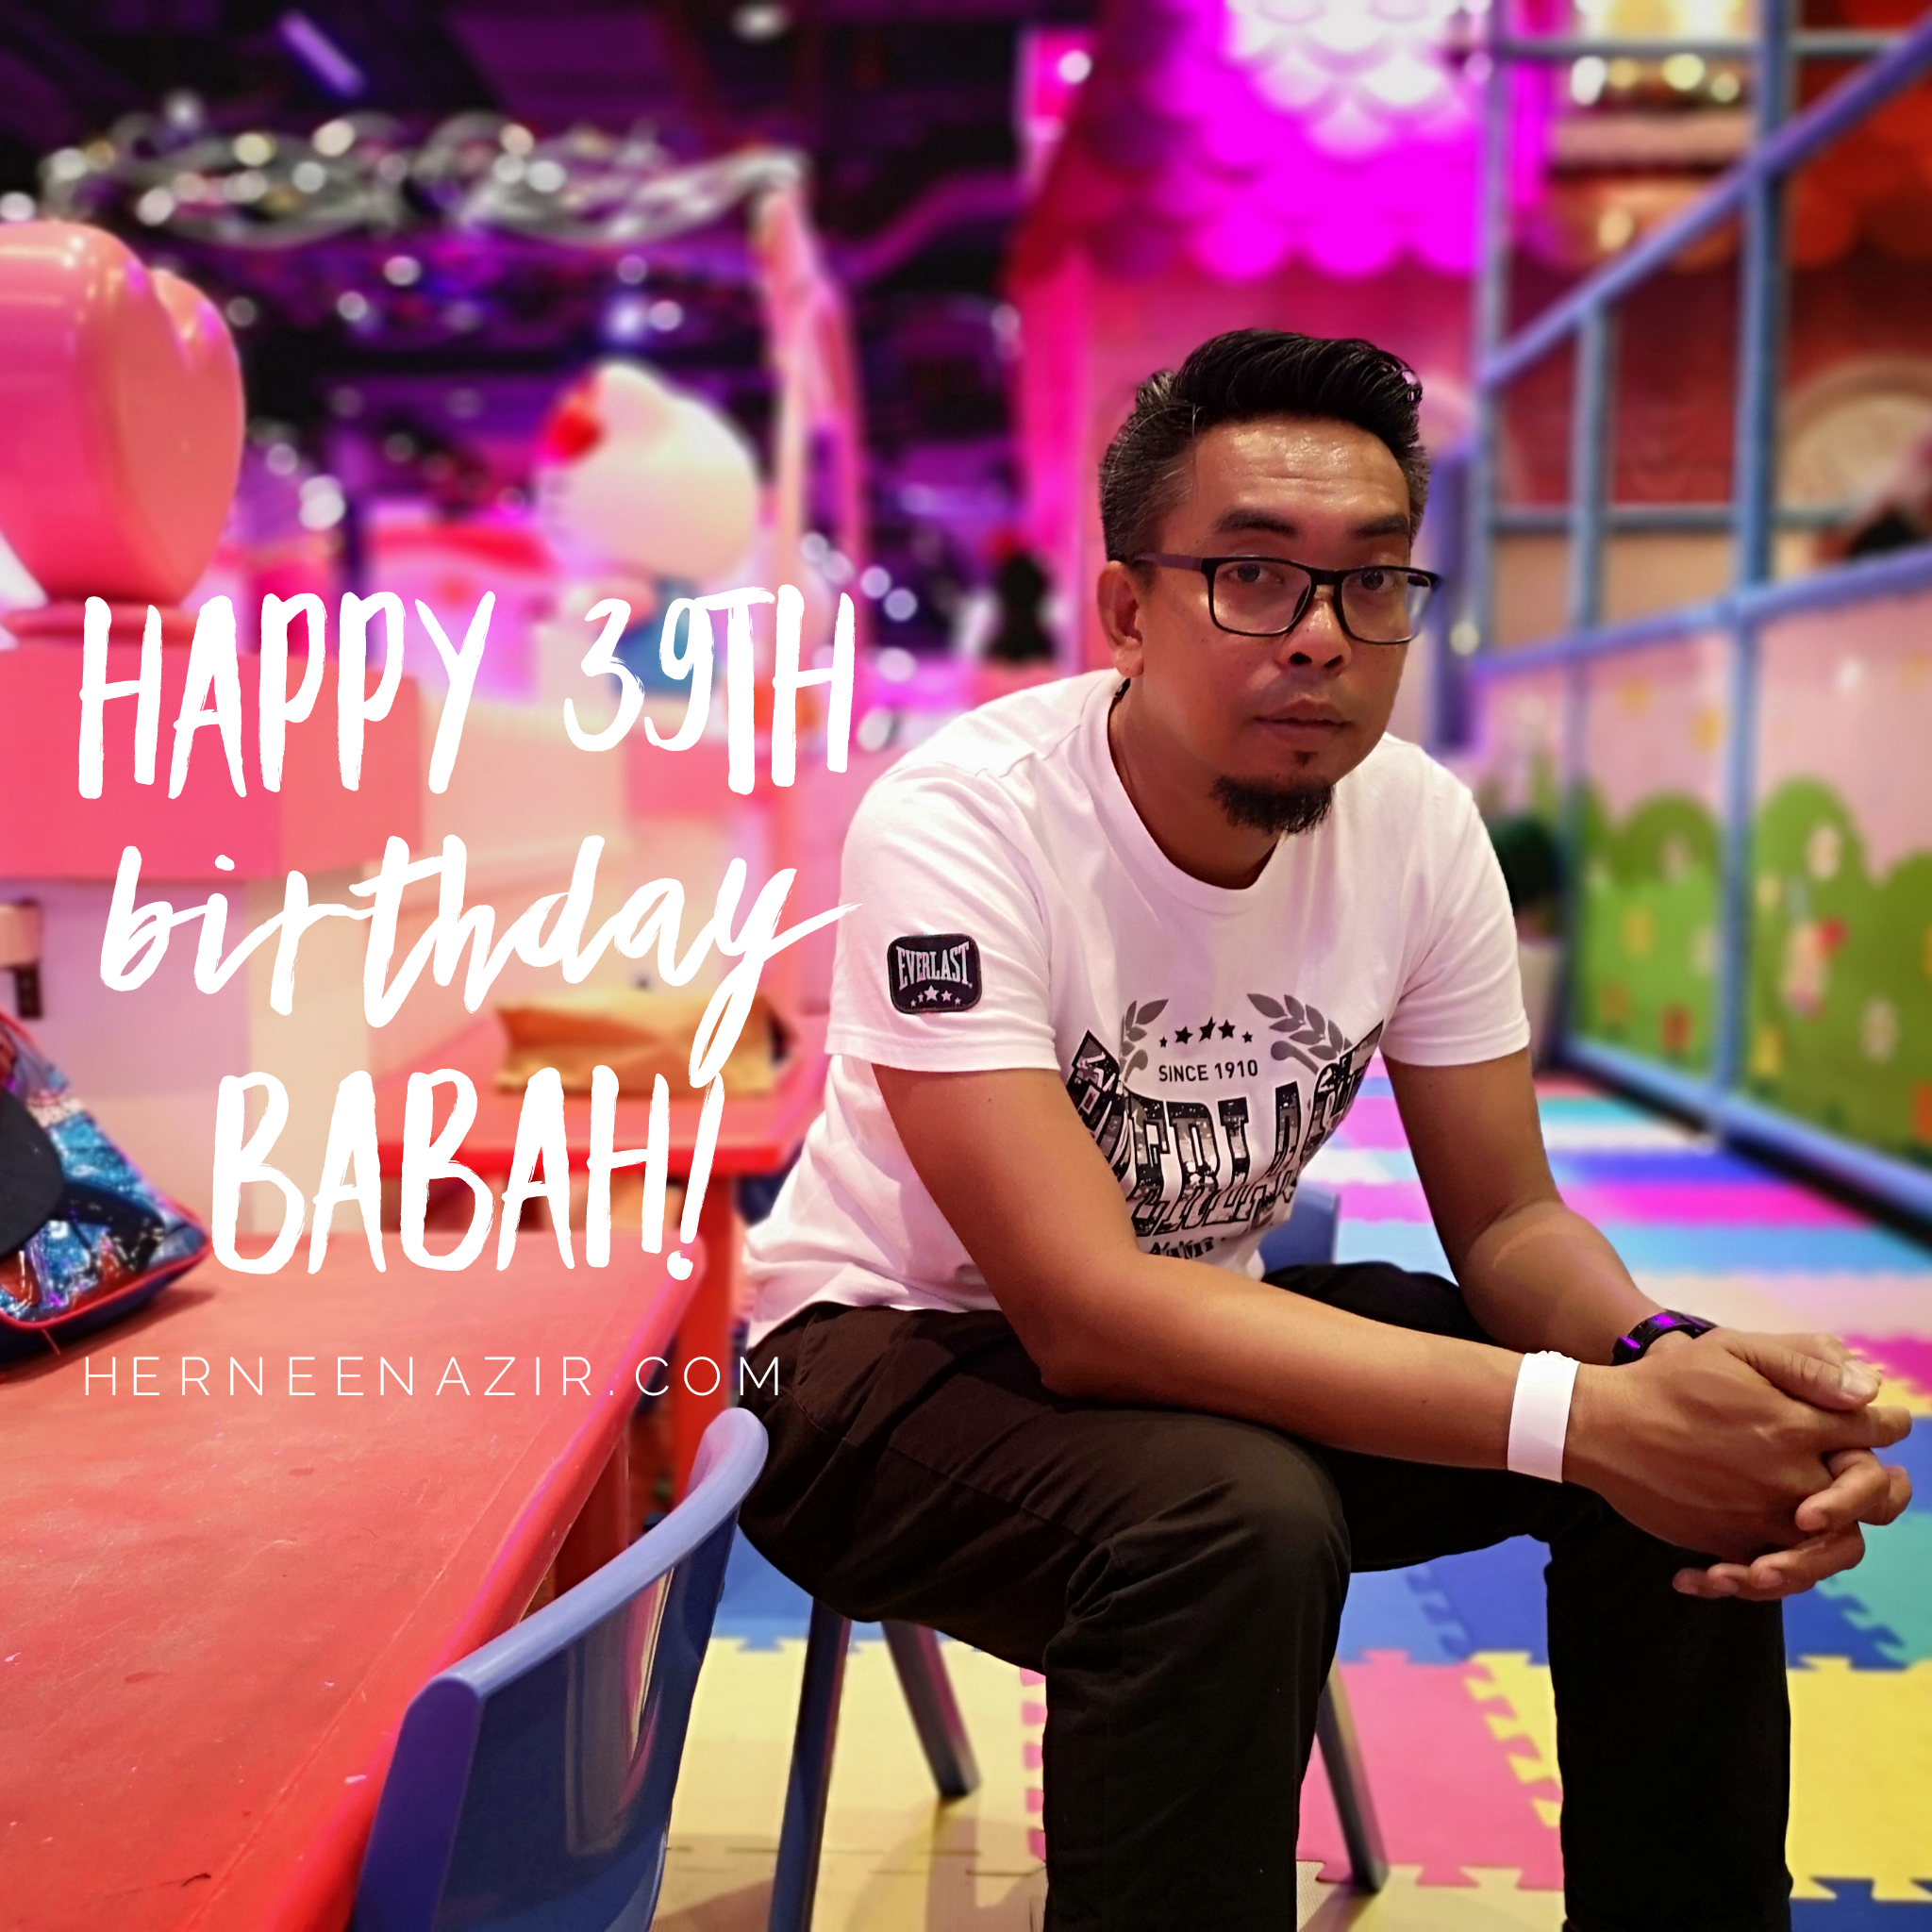 Happy 39th Birthday Babah!